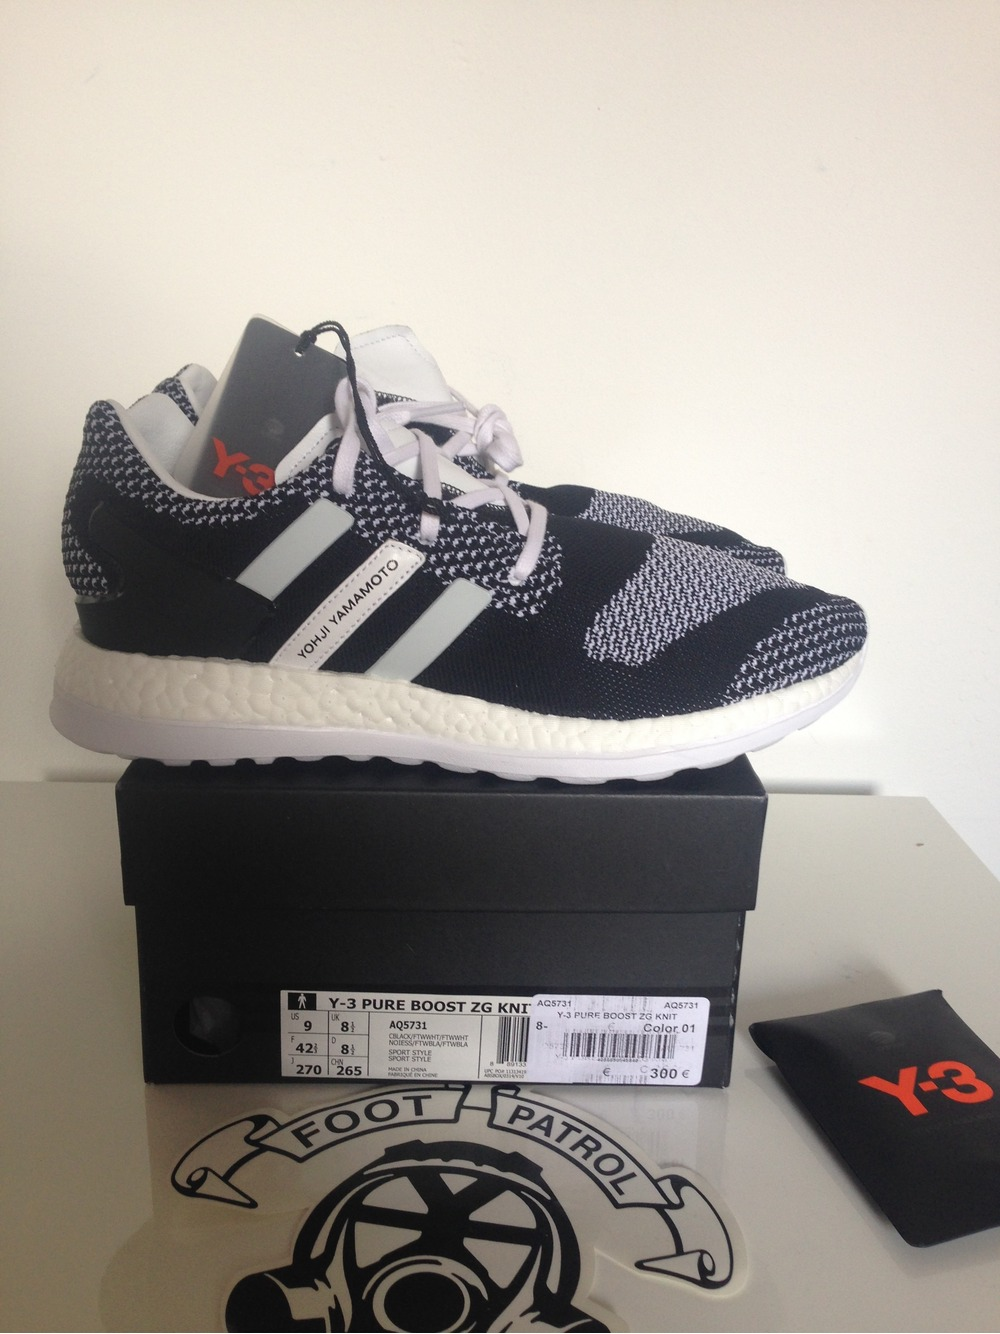 36331aa61d3f Adidas Y3 Pure Boost Zg Knit dishwasher-repairs.co.uk